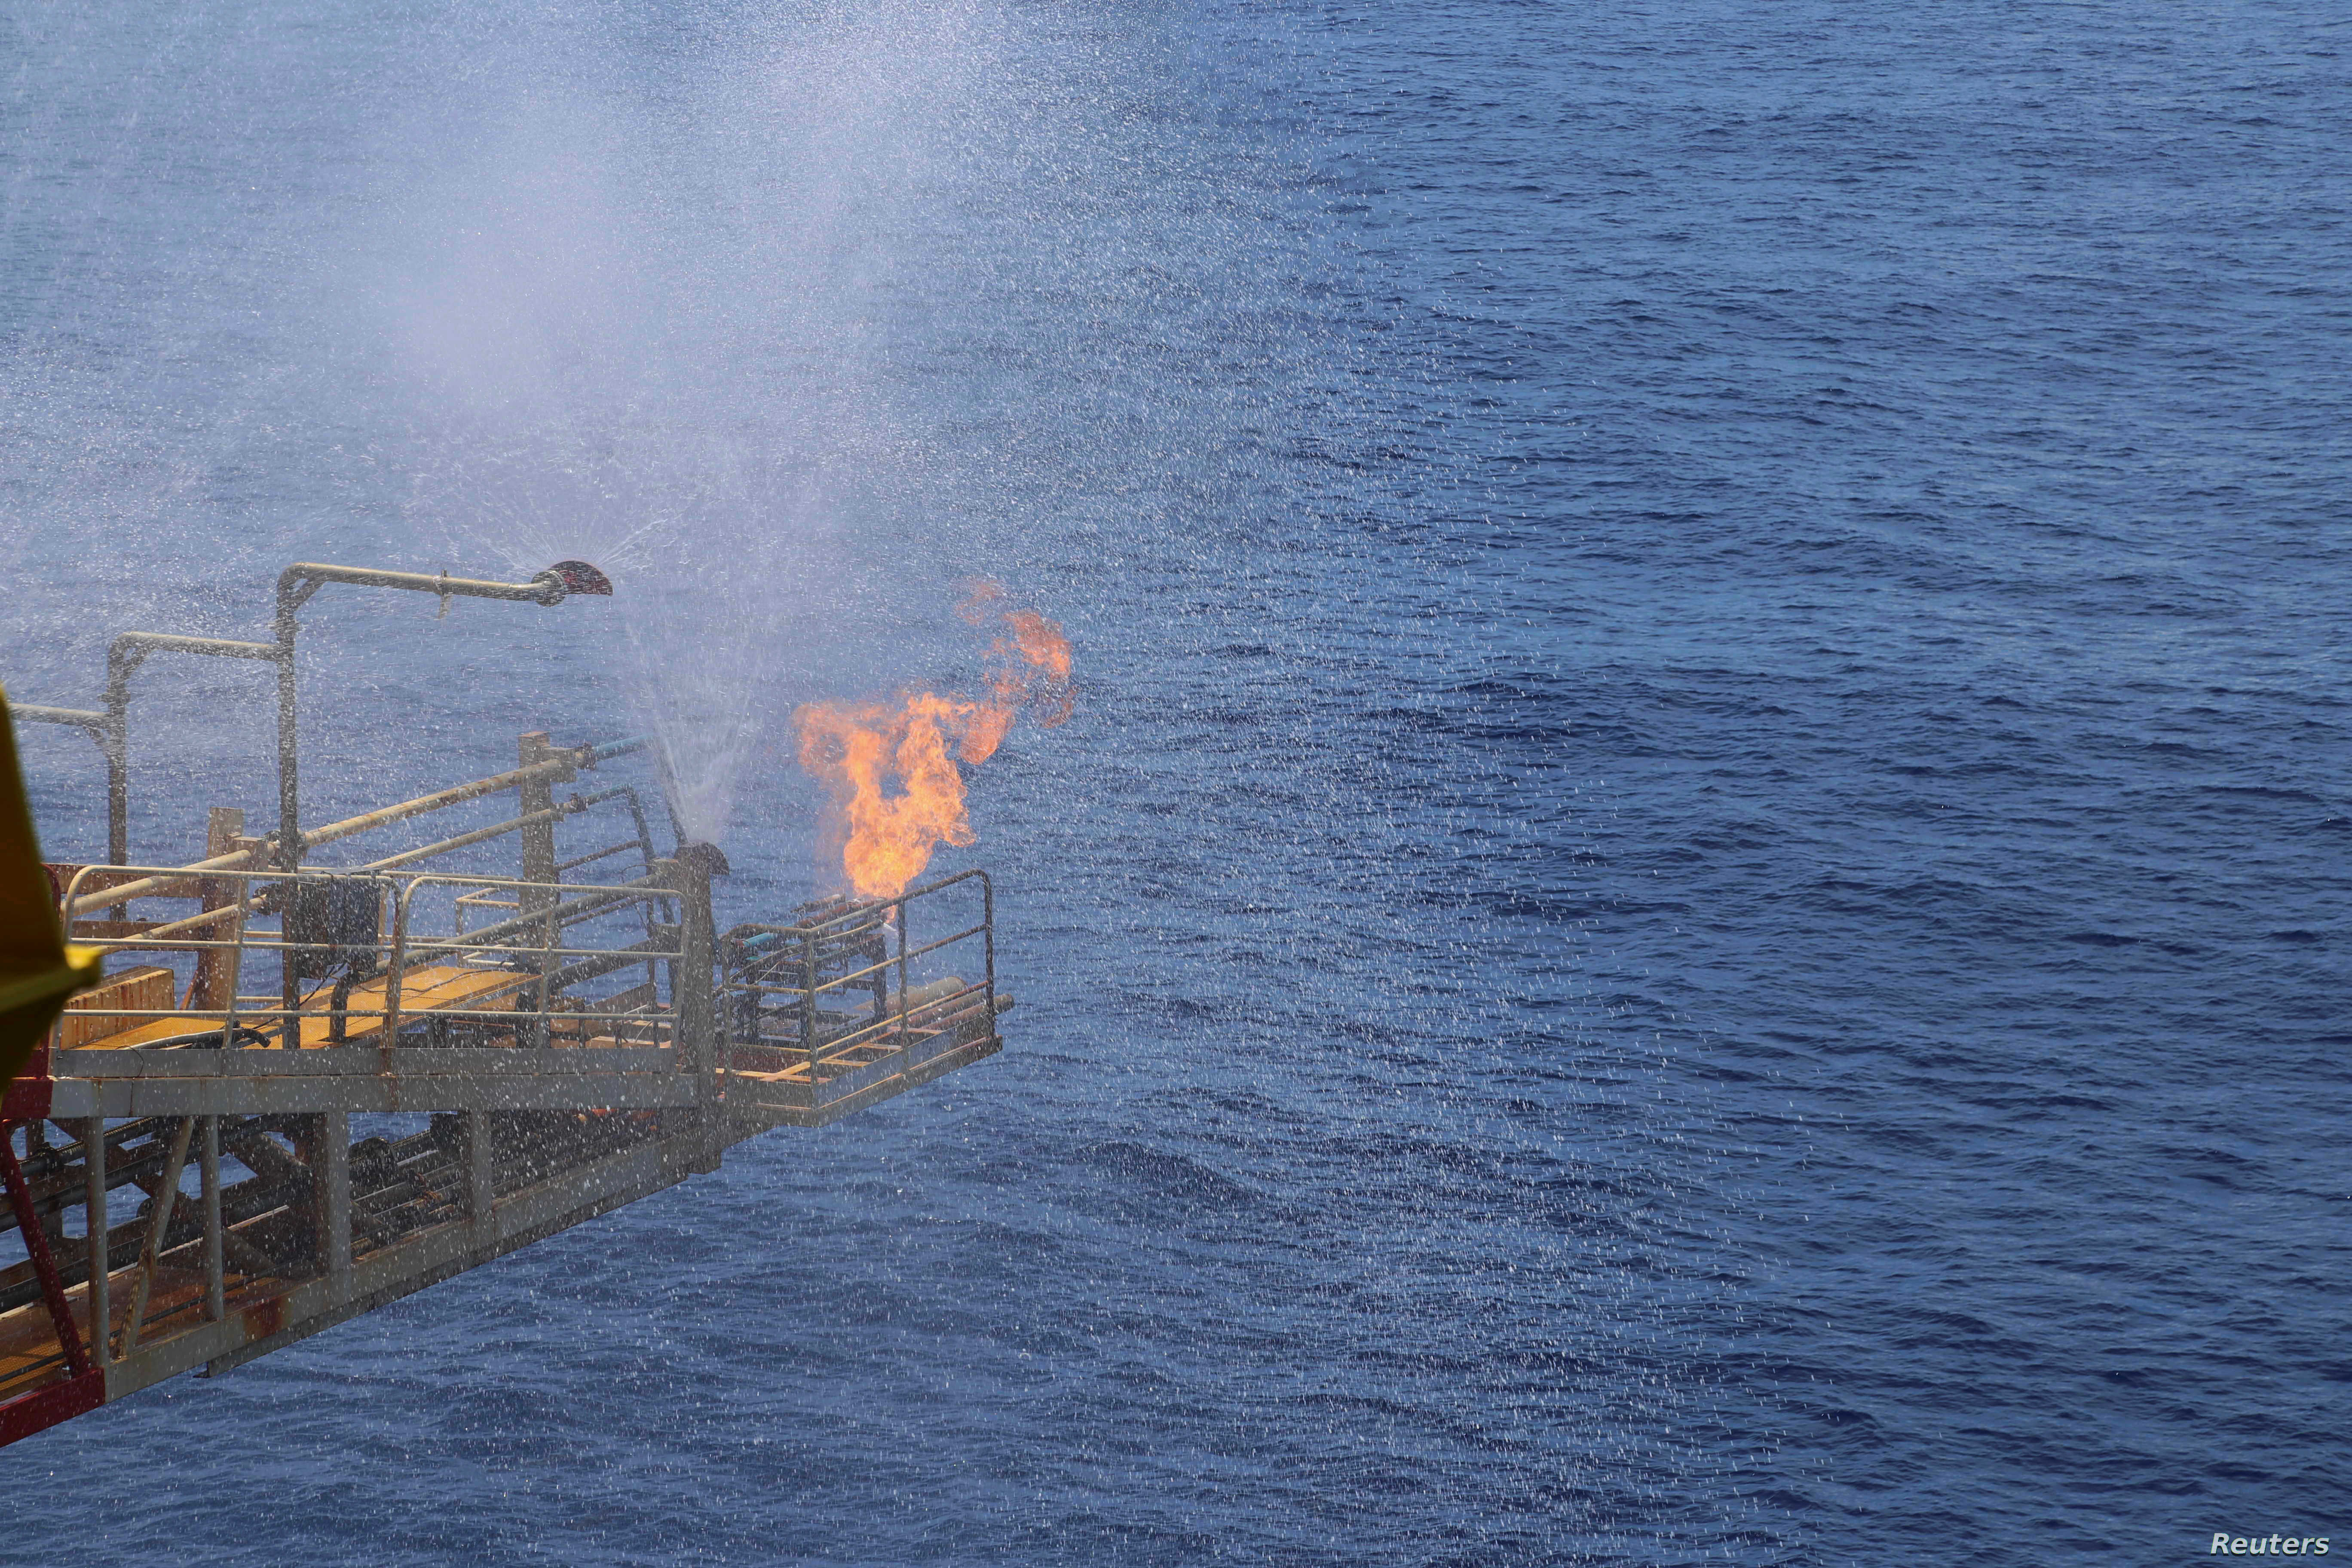 South China Sea Succumbing to Pollution Due to Political